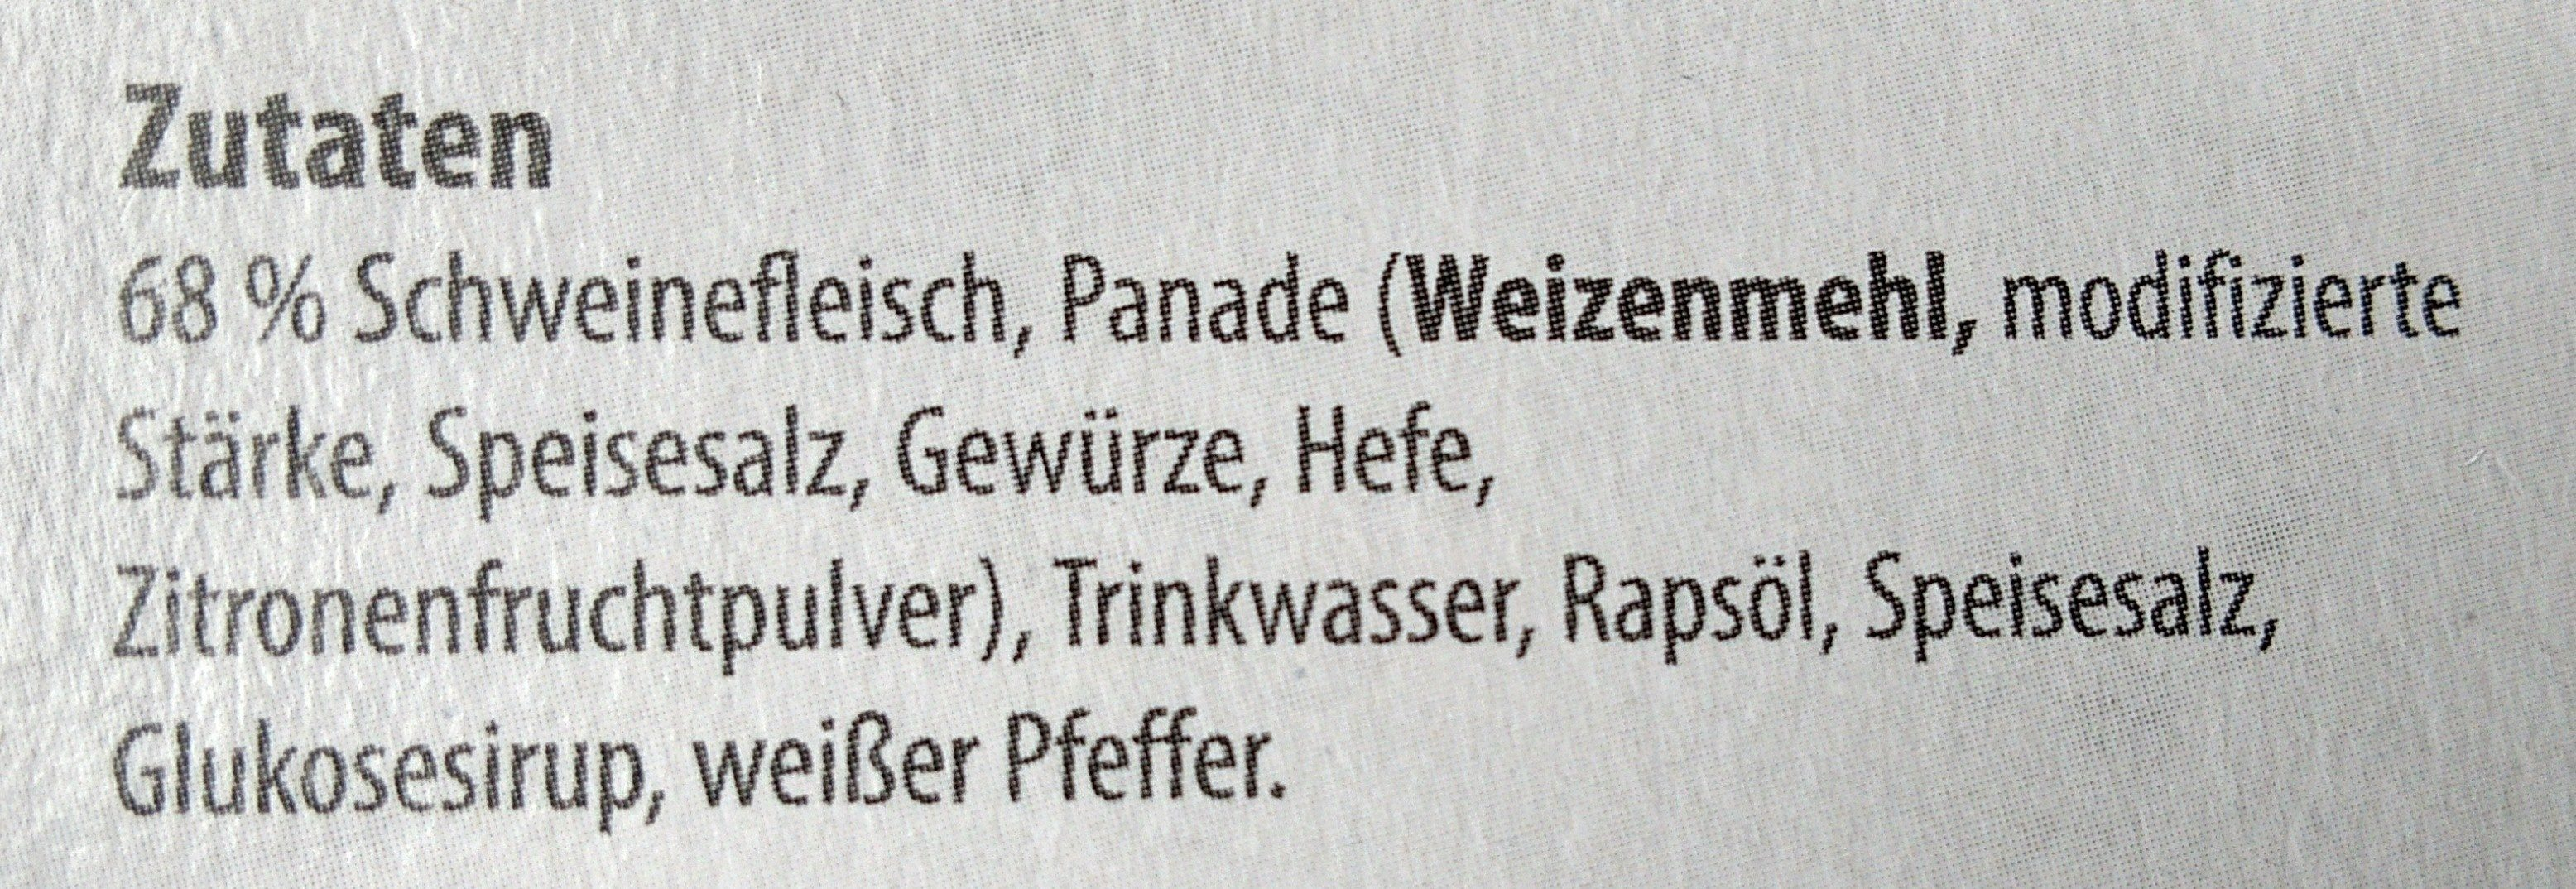 XXL Schnitzel - Ingredients